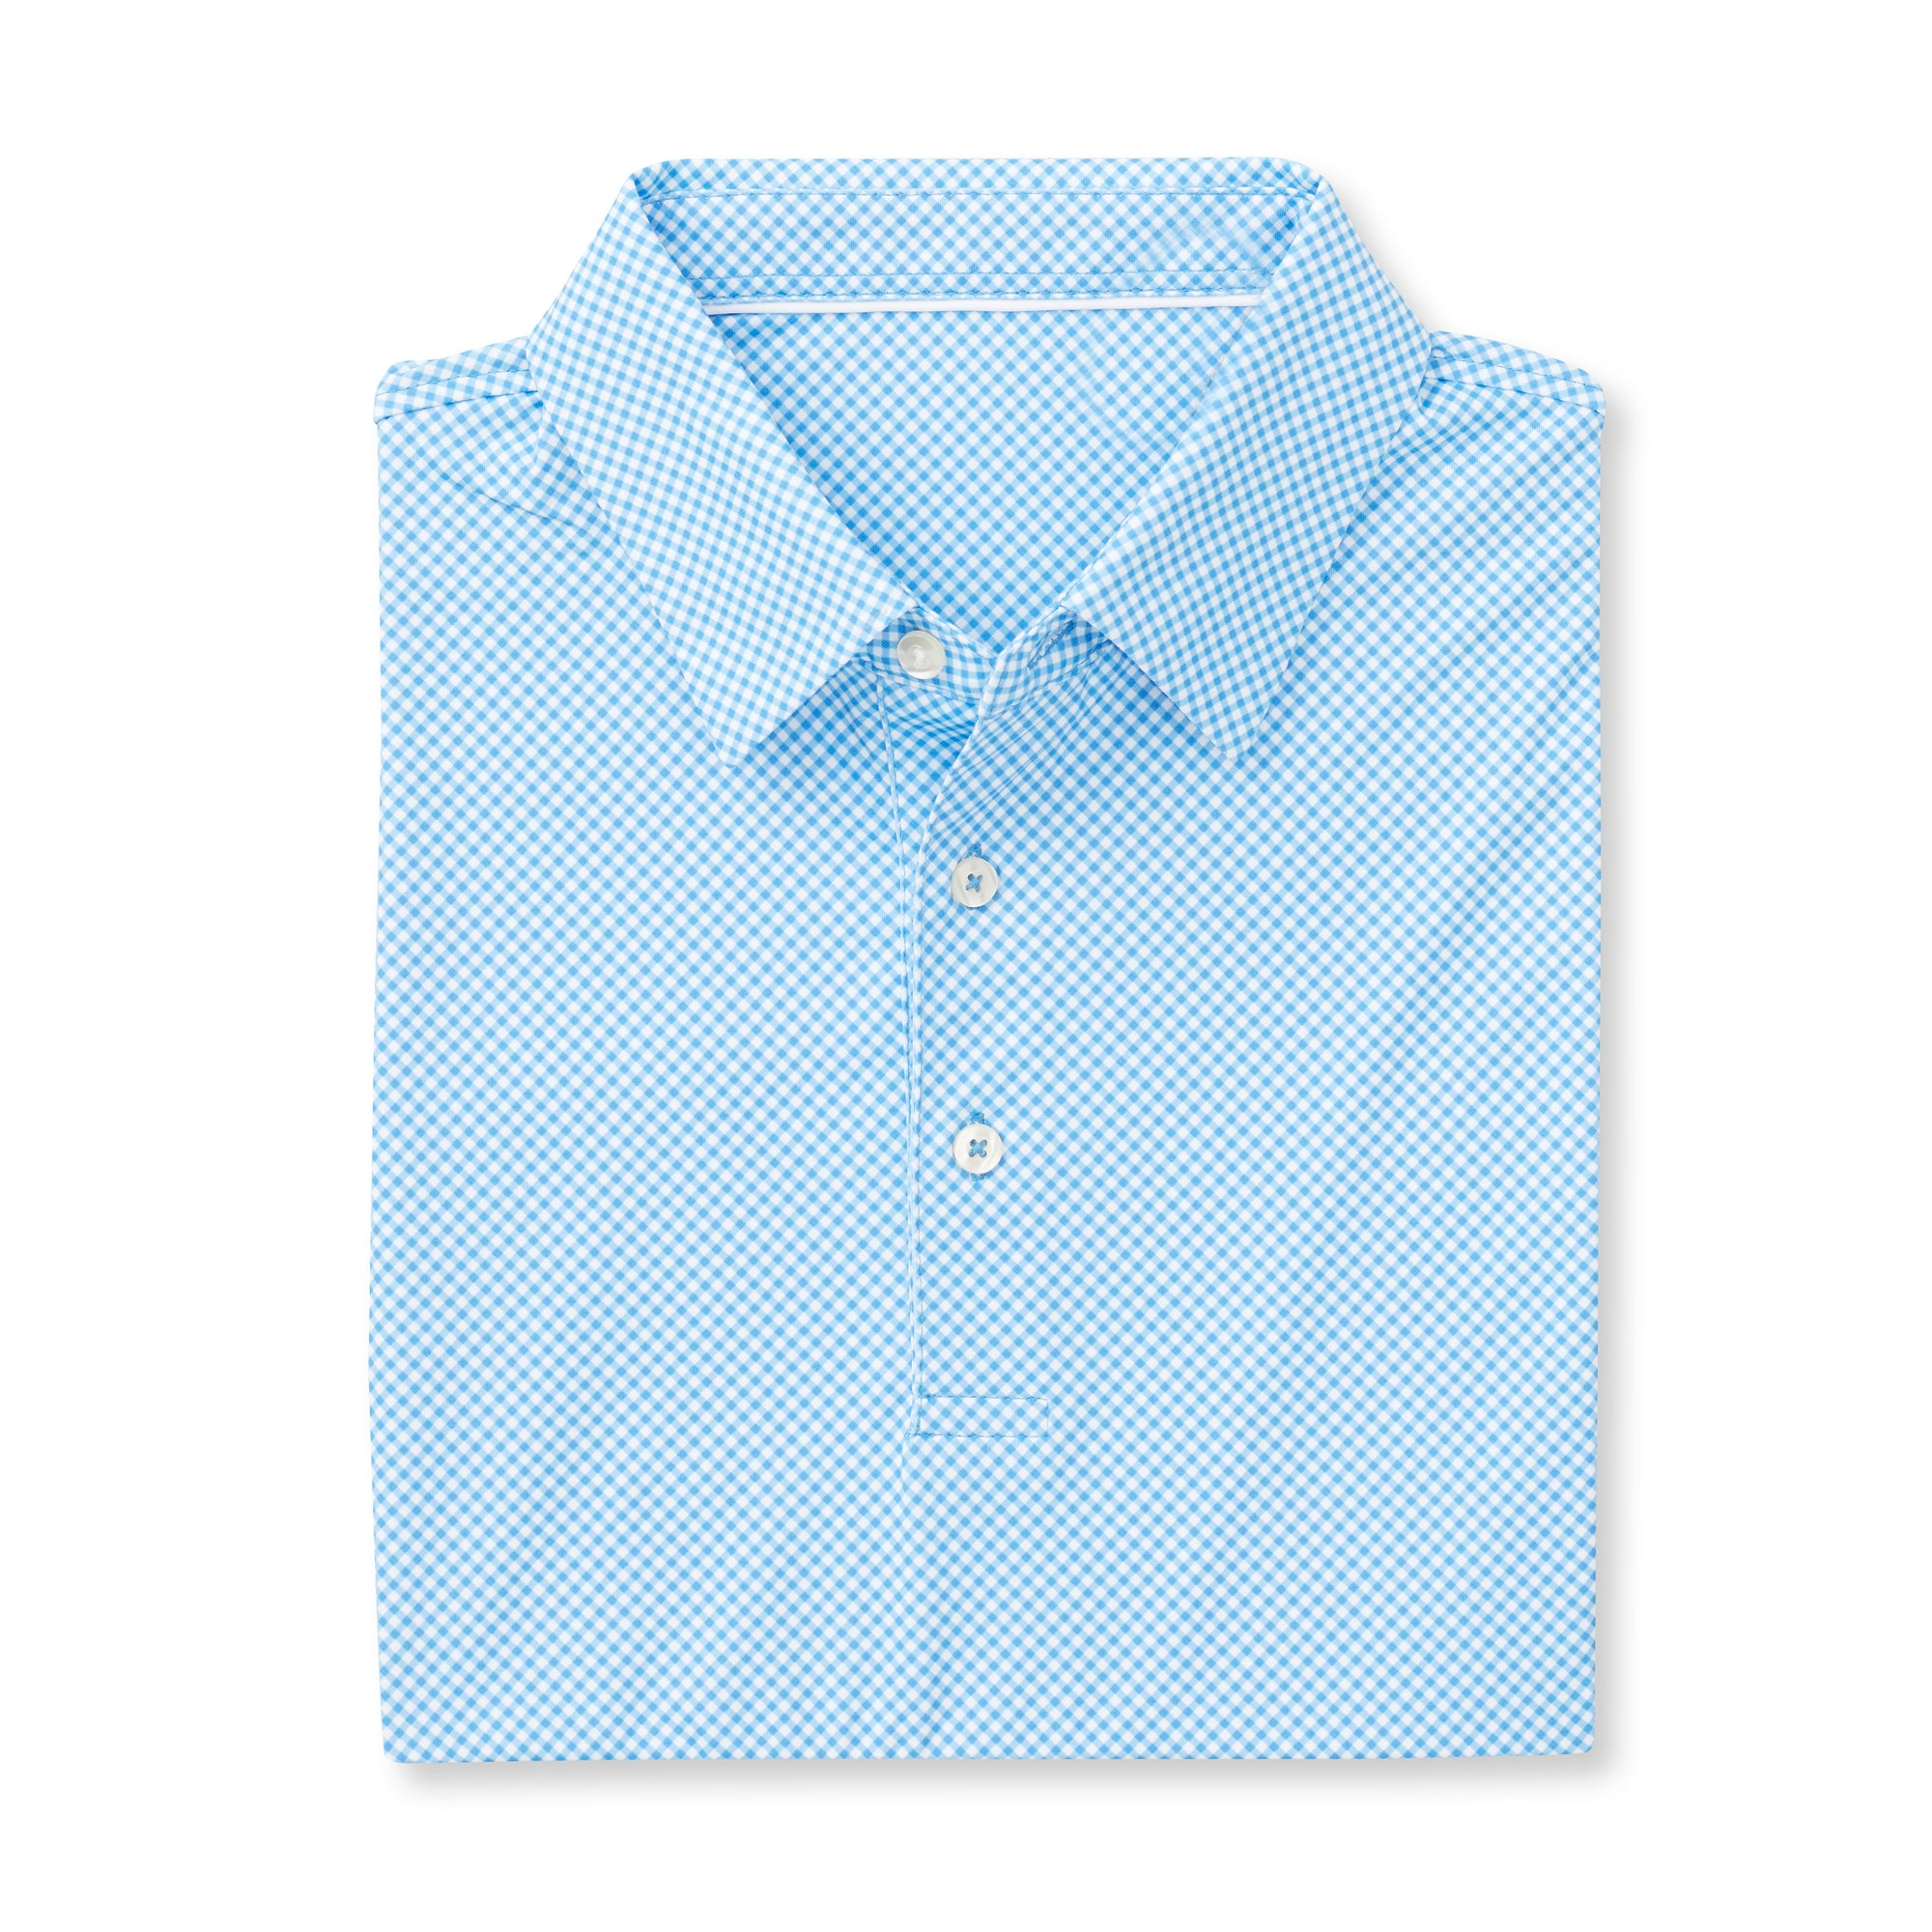 THE VINEYARD GINGHAM POLO - Maui IS76801